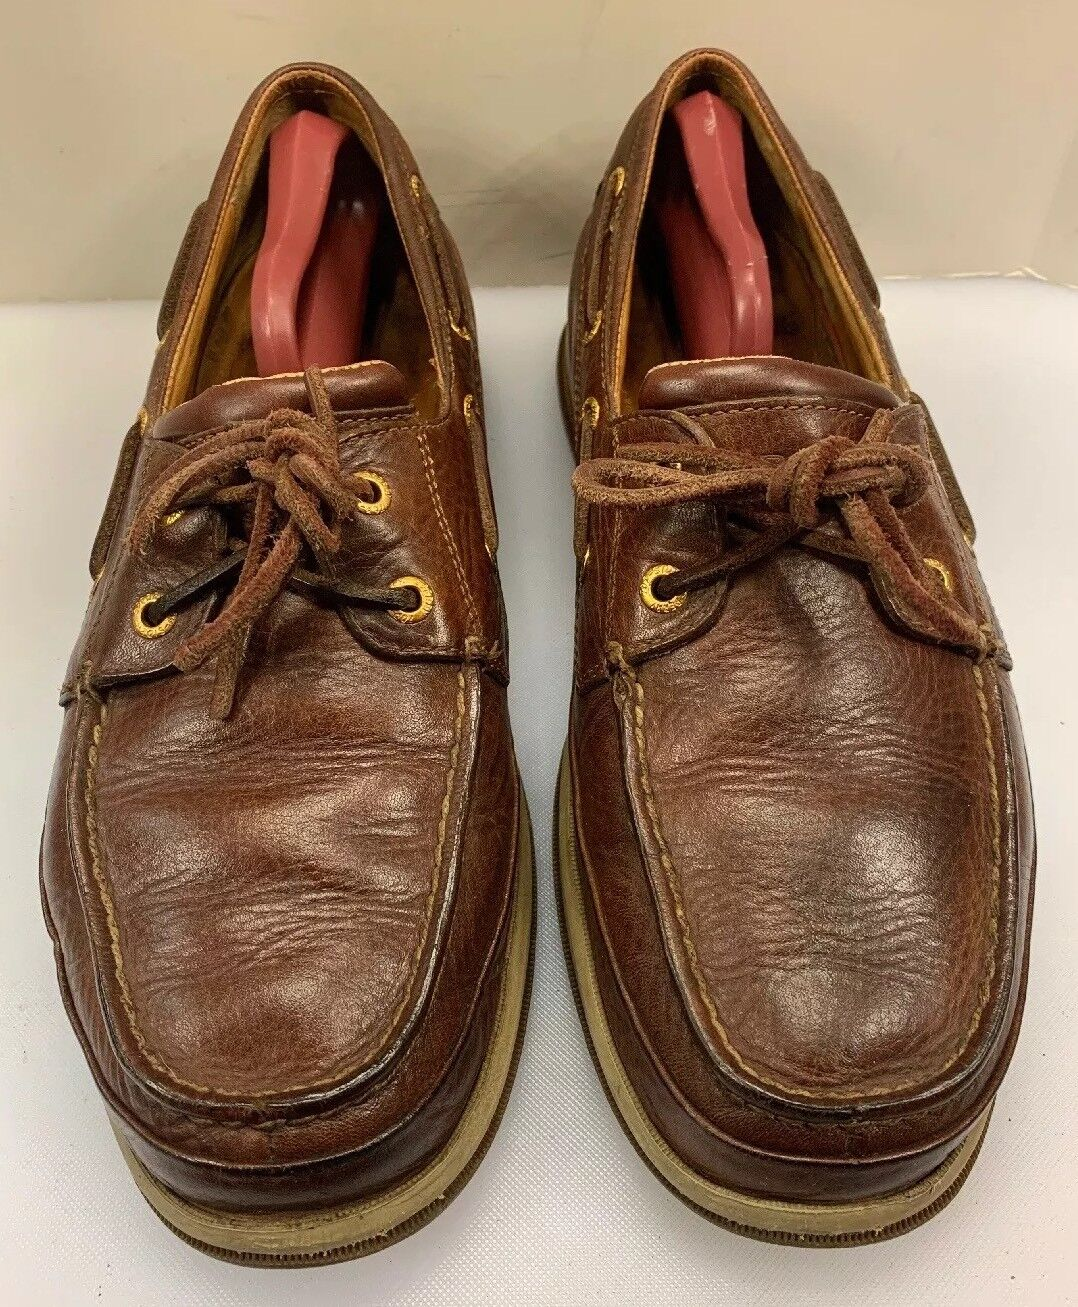 Sperry Top Sider gold Cup Men 9.5 M Boat shoes Brown 2 Eye Vibram Sole 0851725